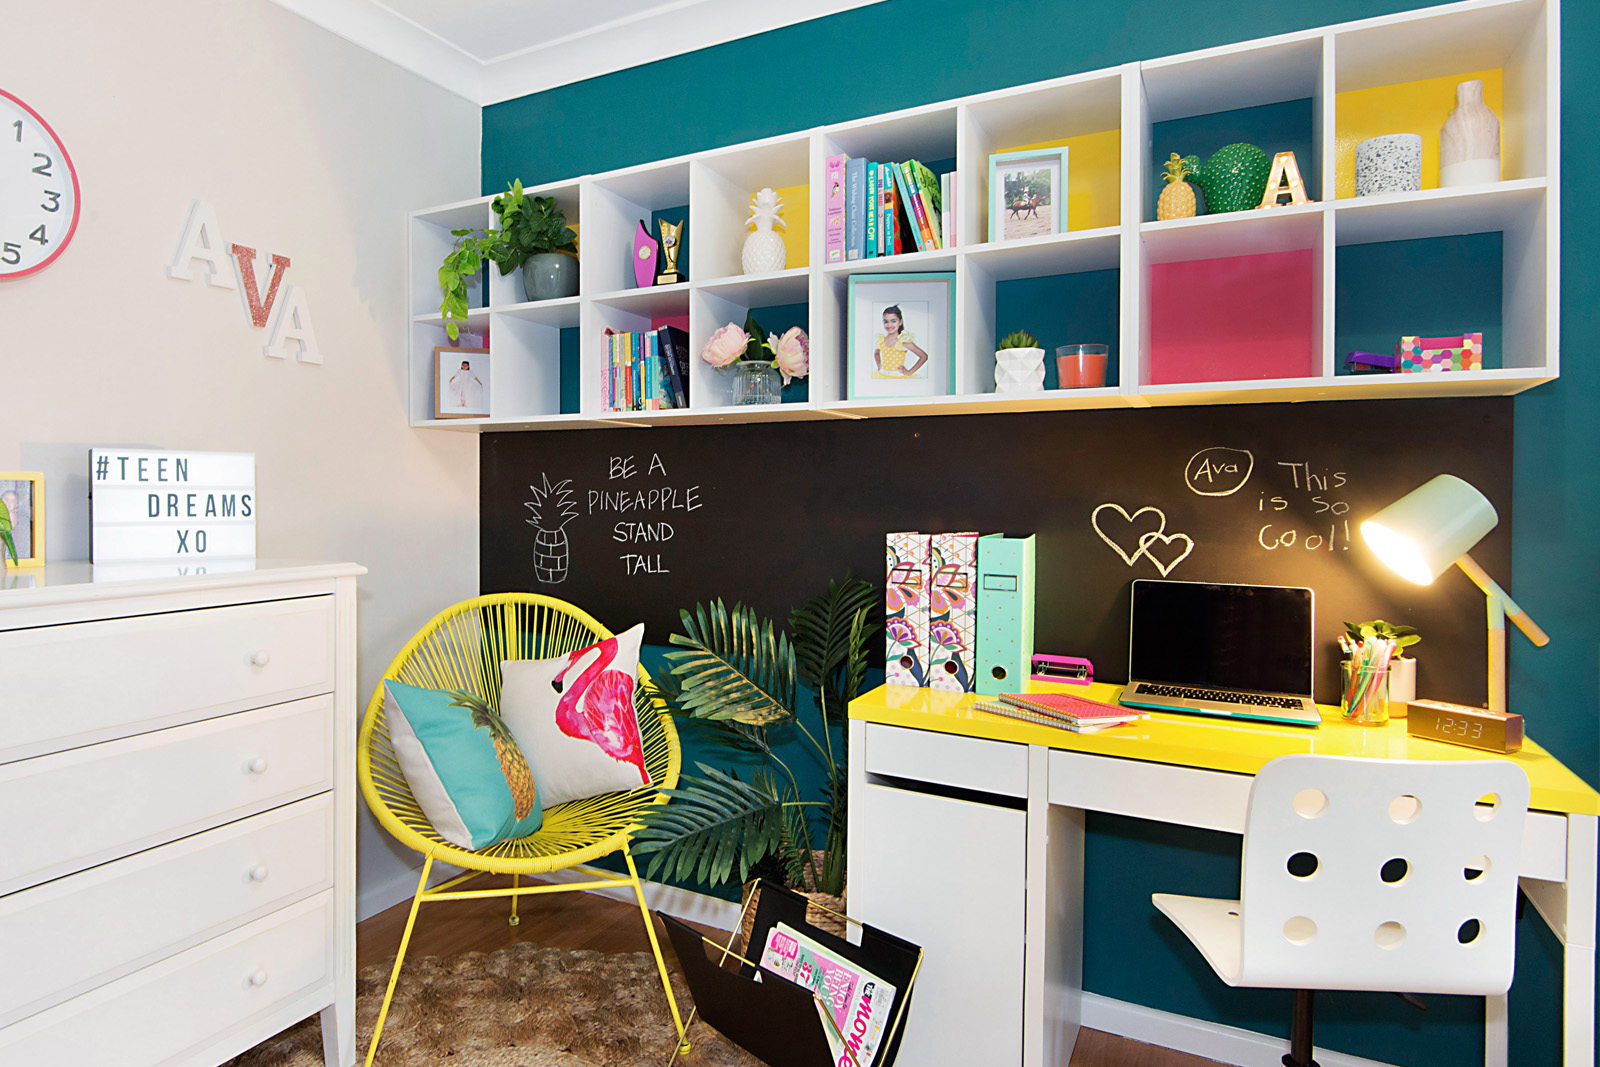 Cherie-Barber_Renovating-For-Profit_Tween-Bedroom_chalkboard-after